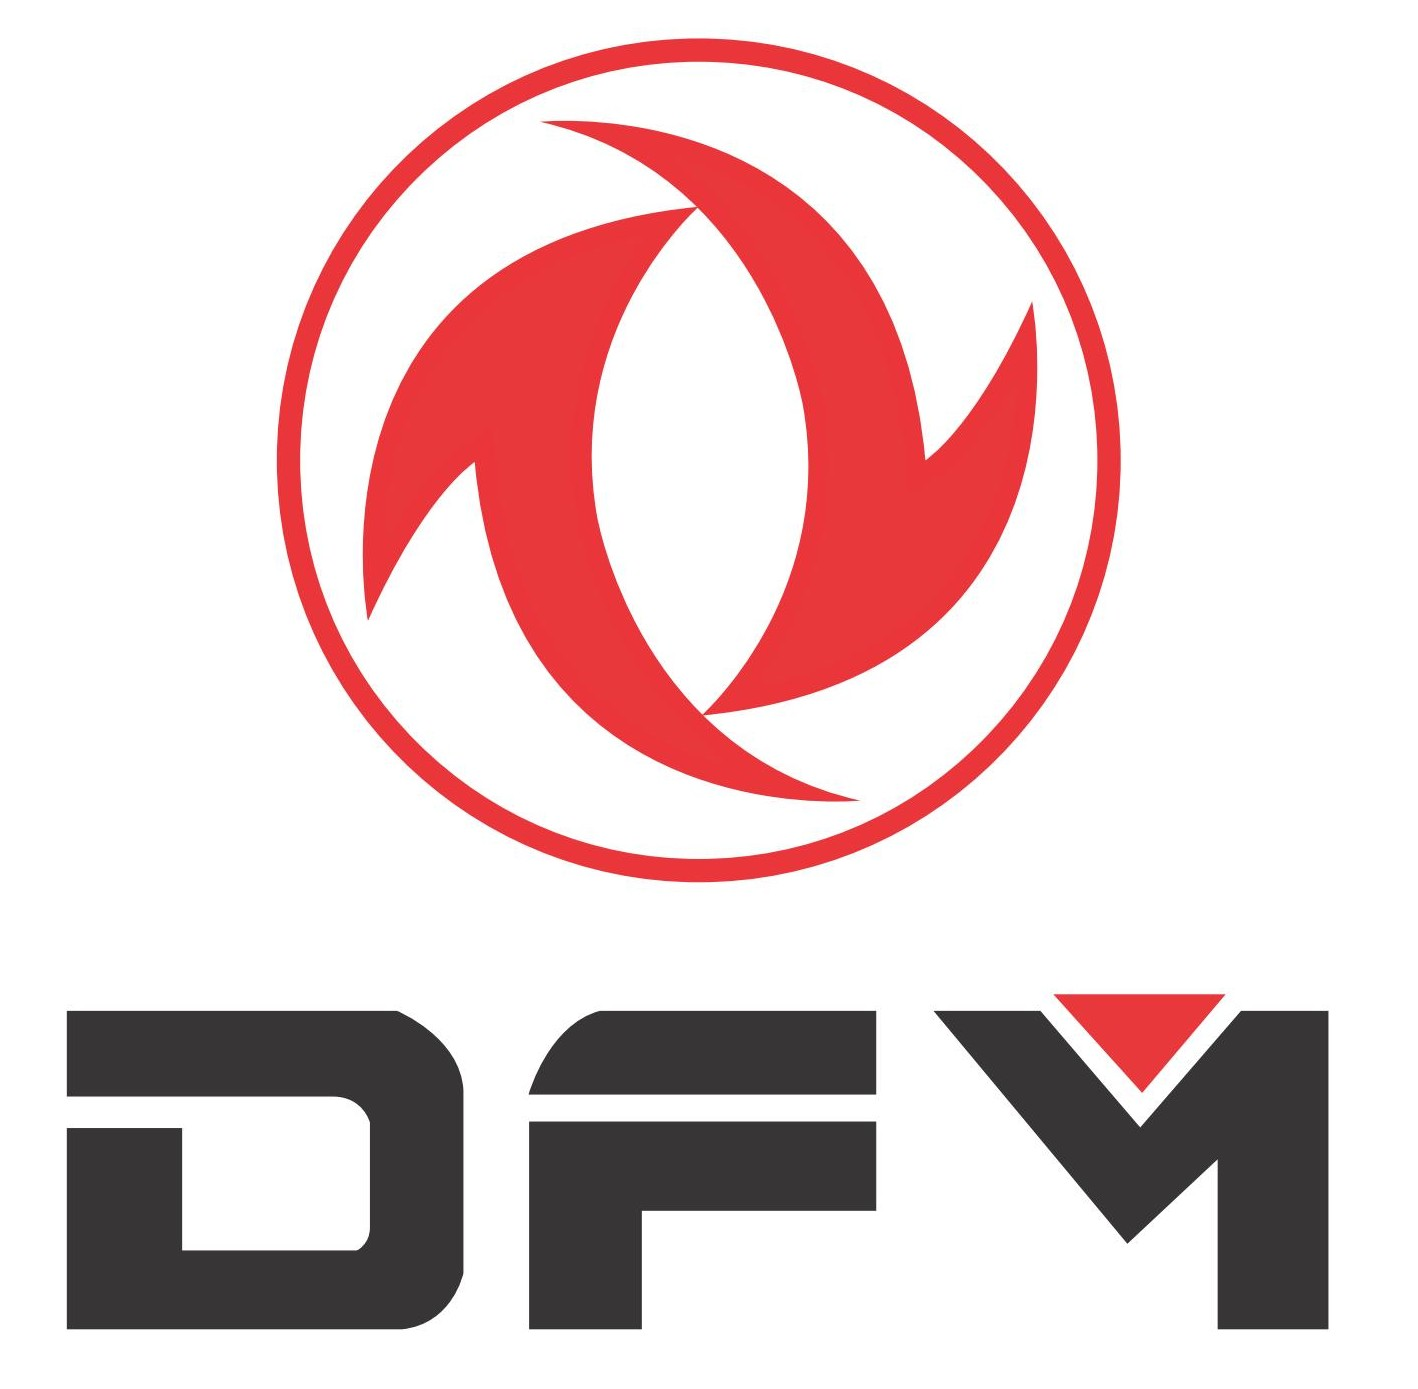 Dongfeng Motor Corporation PlusPng.com  - Dongfeng Motor Logo Vector PNG